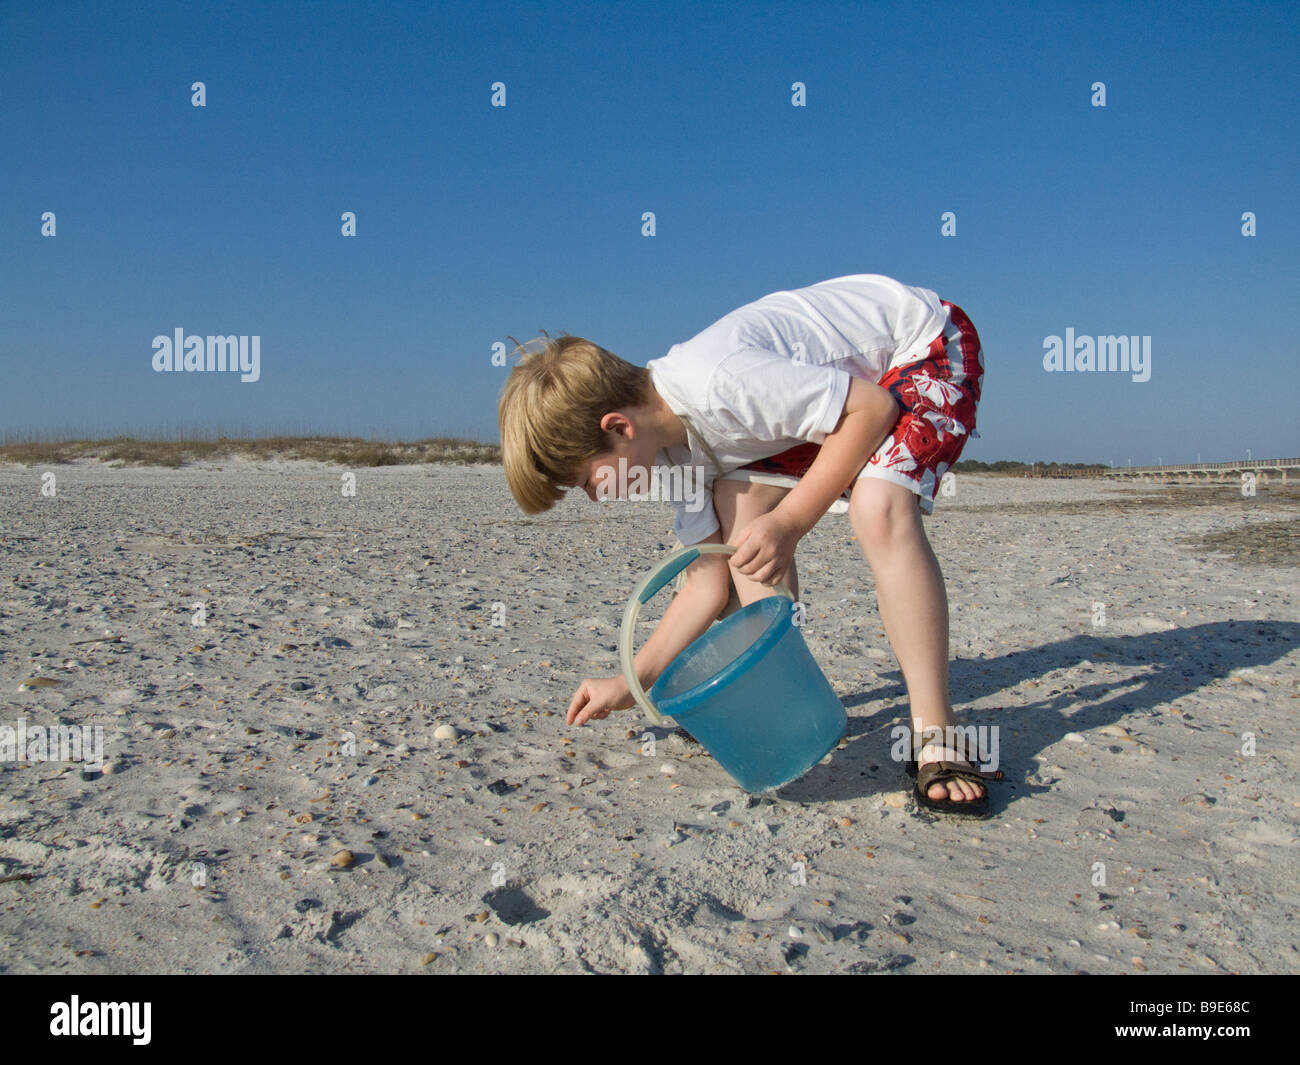 boy on beach with bucked collecting shells - Stock Image